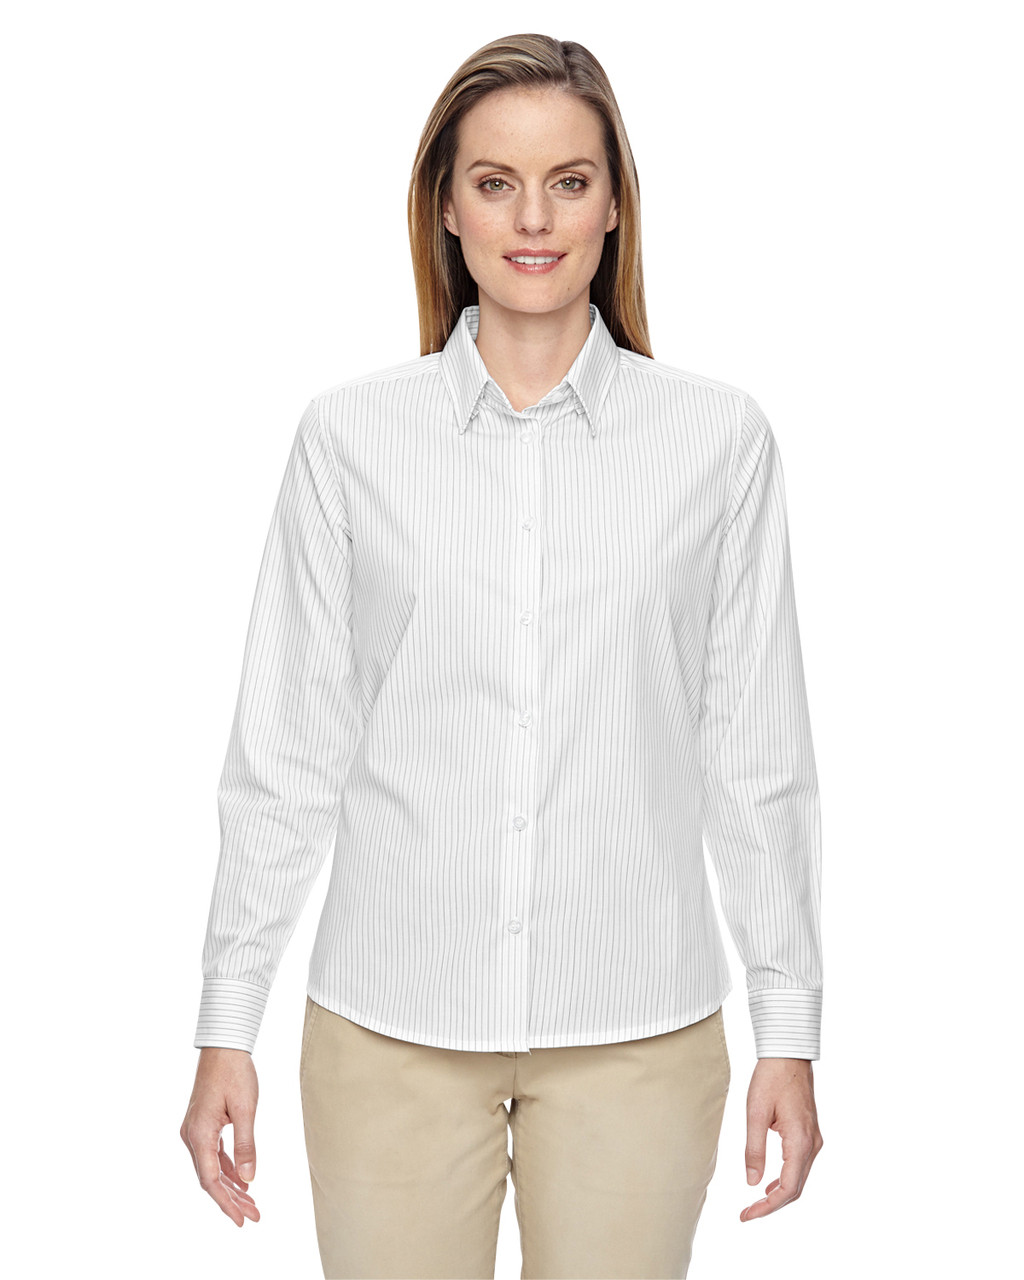 White - 77044 North End Align Wrinkle-Resistant Cotton Blend Dobby Vertical Striped Shirt | Blankclothing.ca